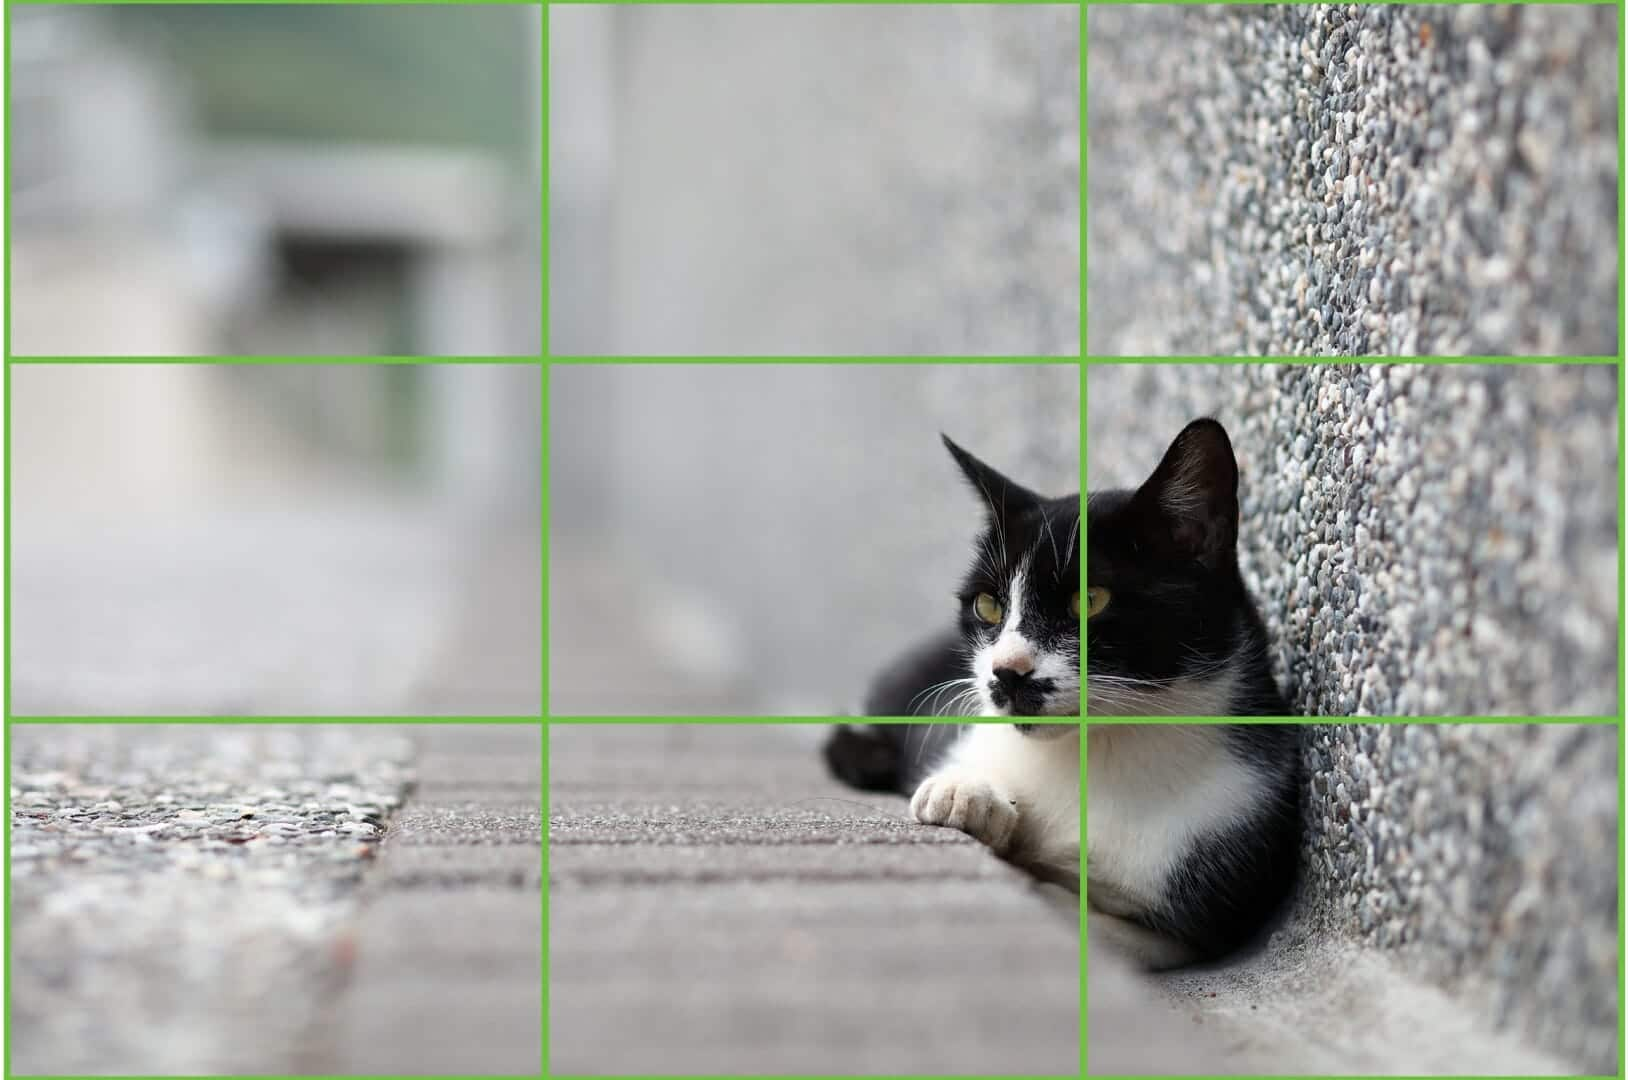 Improve Your Photos with the Rule of Thirds